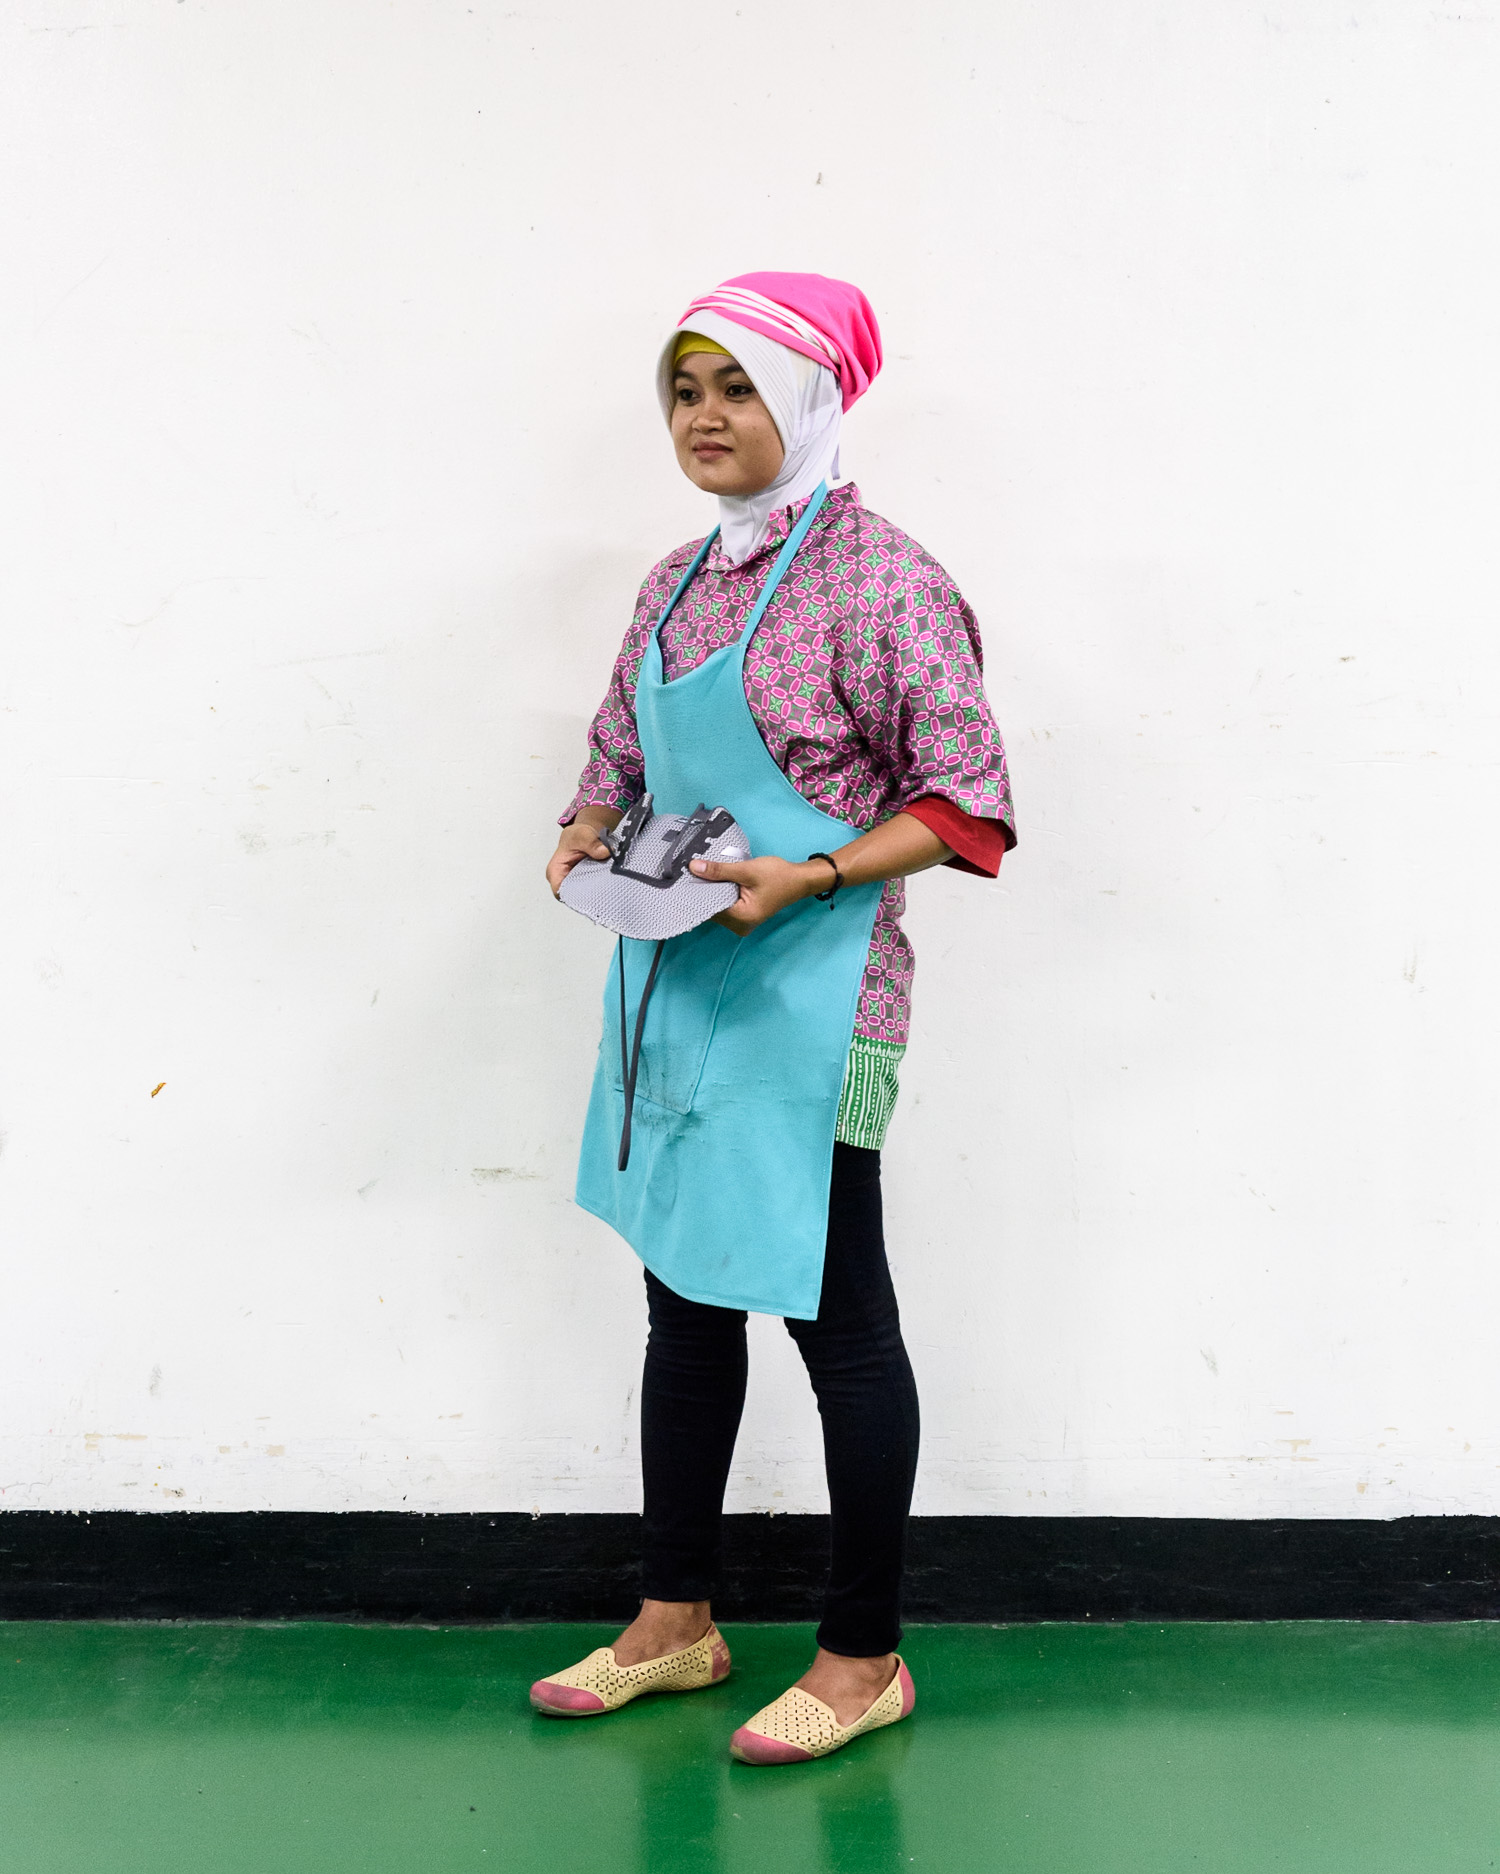 A worker at the PWI factory, which employs over 10,000 people. 75,000 pairs of shoes are produced every day, 22 million pairs per year